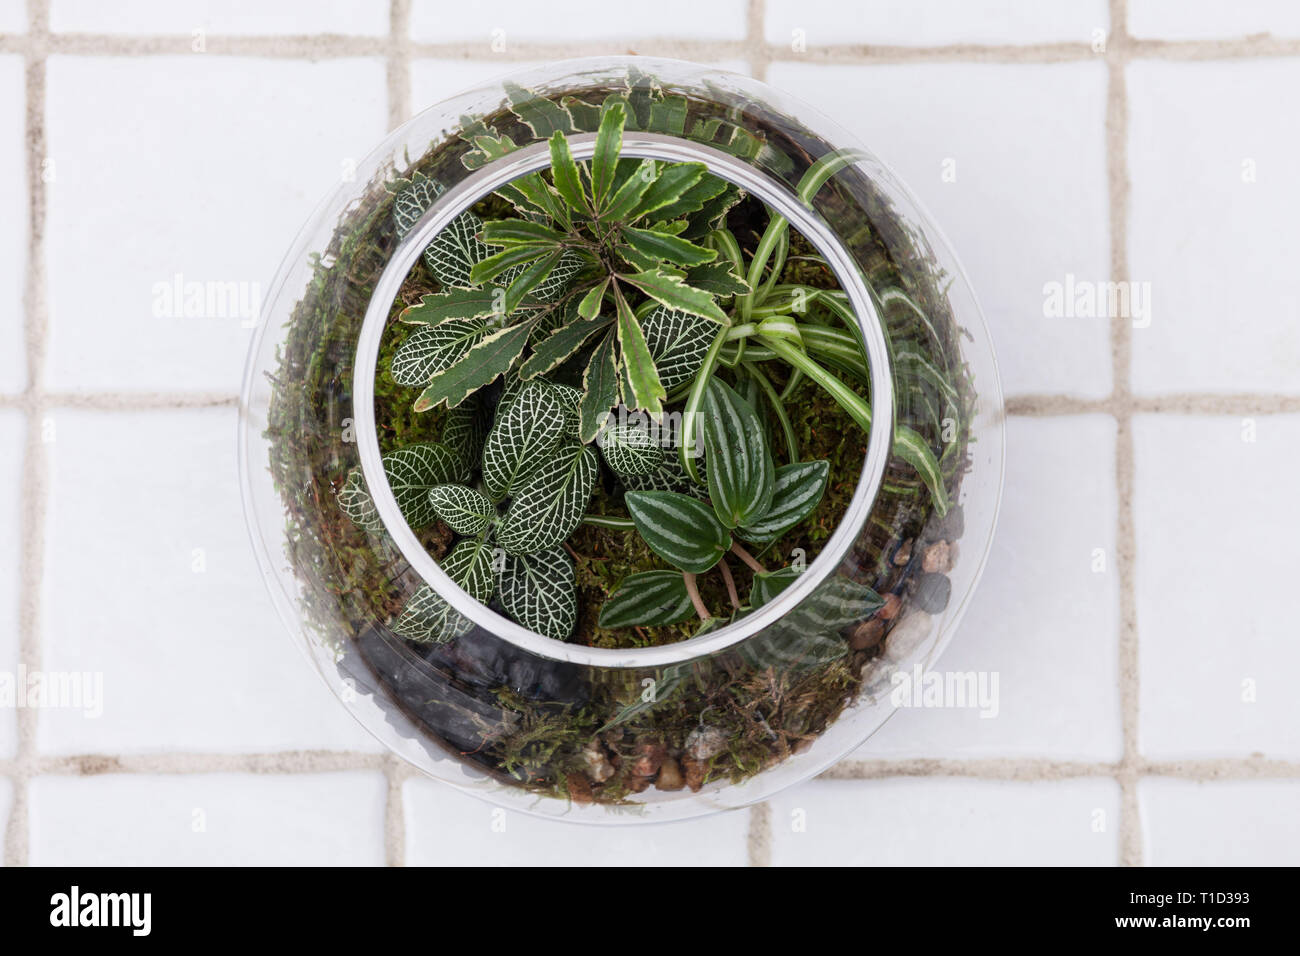 High Angle View Of Fish Bowl Terrarium On White Tile Stock Photo Alamy